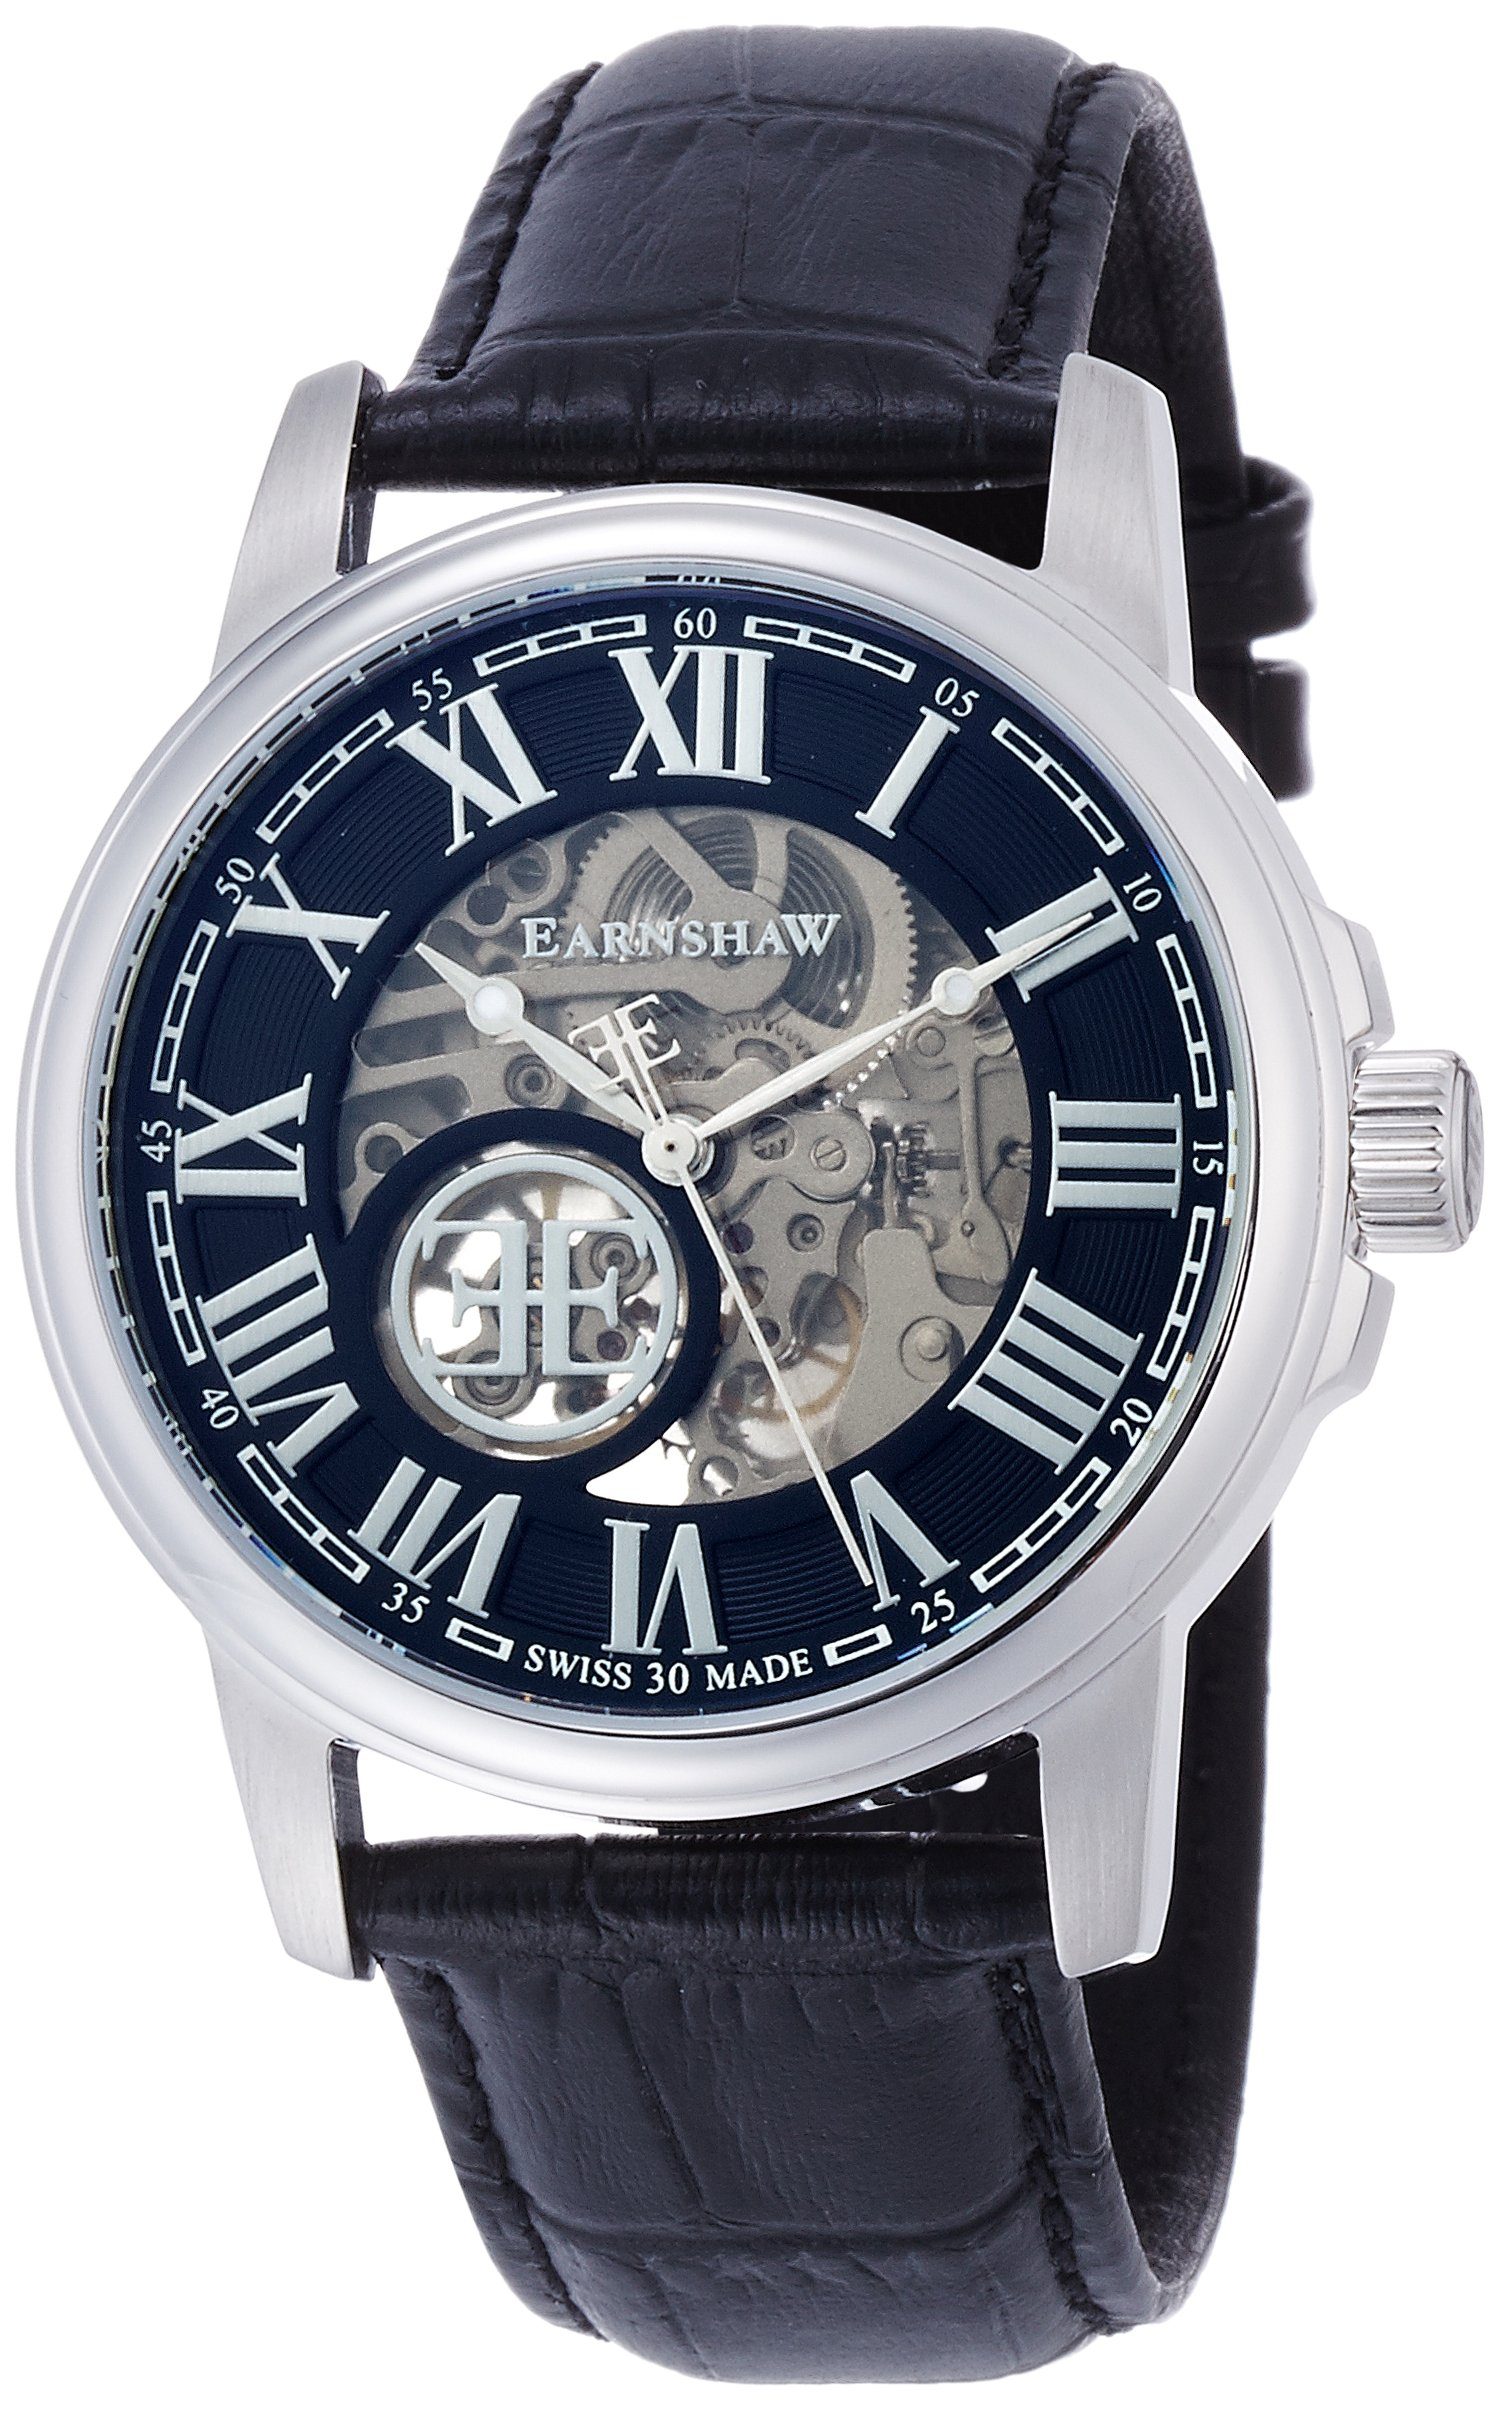 Thomas Earnshaw Beagle Men S Automatic Watch With Black Dial Analogue Display With Black Leather Strap Es 0028 01 Buy Online In Antigua And Barbuda At Antigua Desertcart Com Productid 49436774